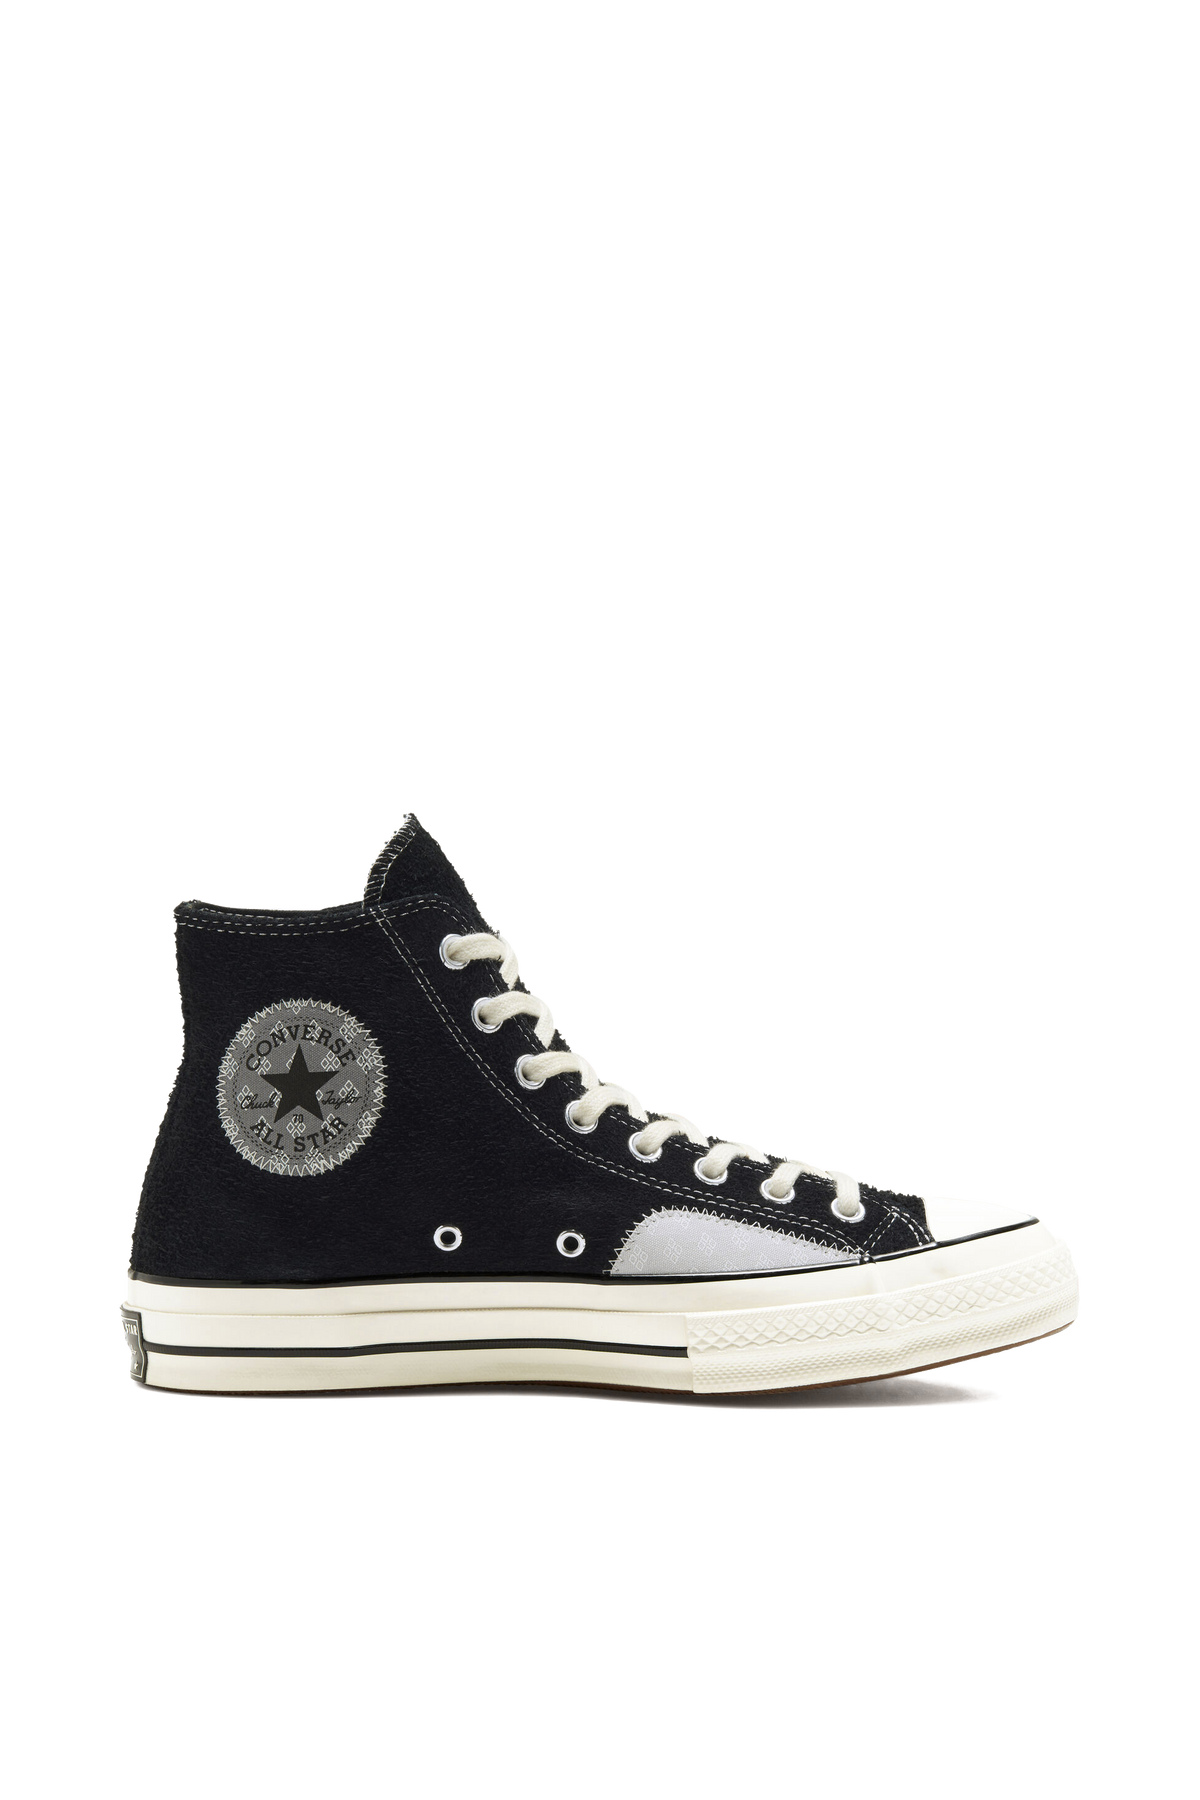 Chuck Taylor All Star 70 Patchwork Suede Hi - Black